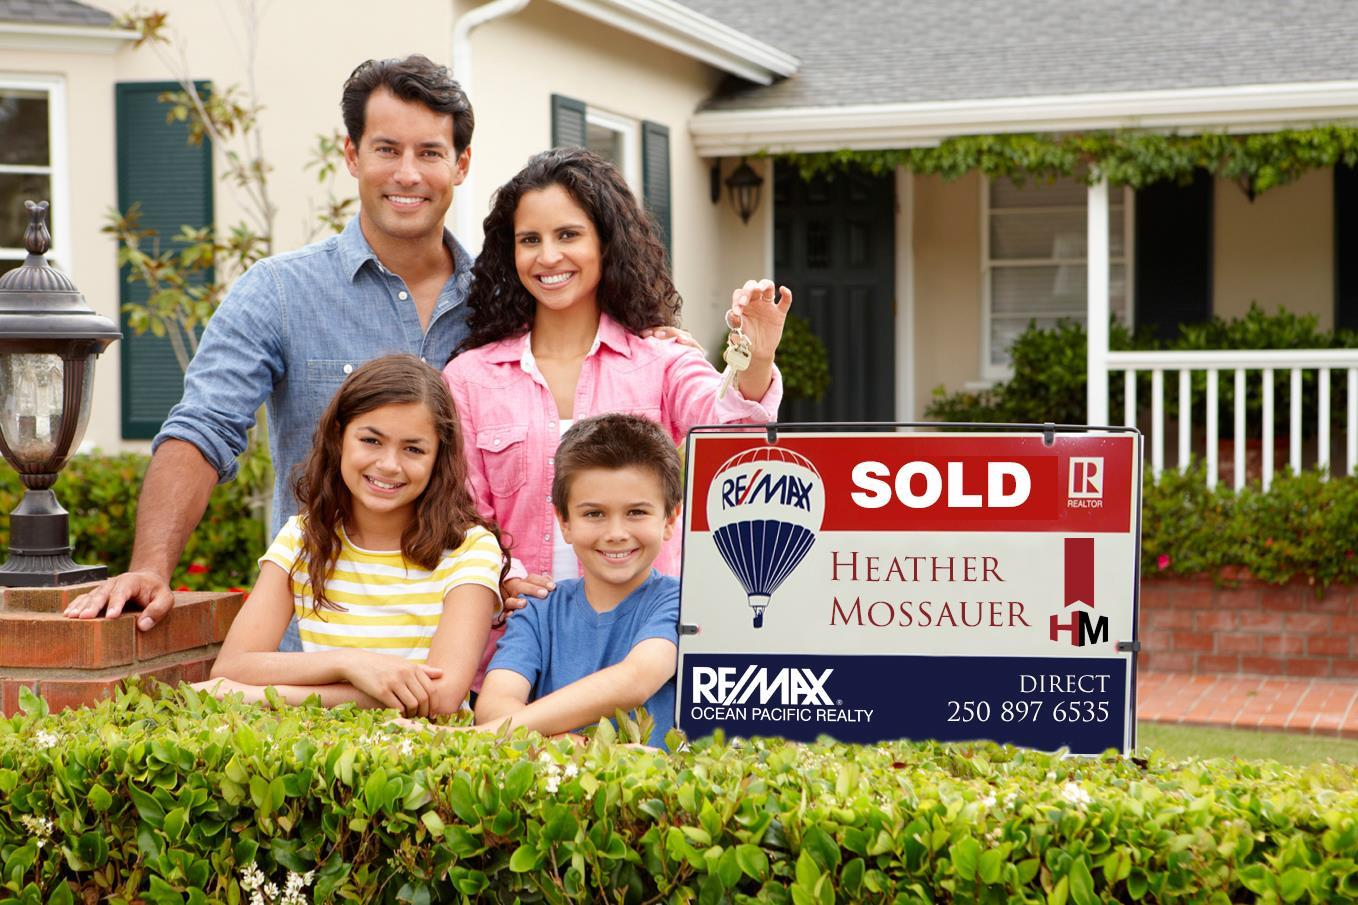 family_sold_sign14.jpg